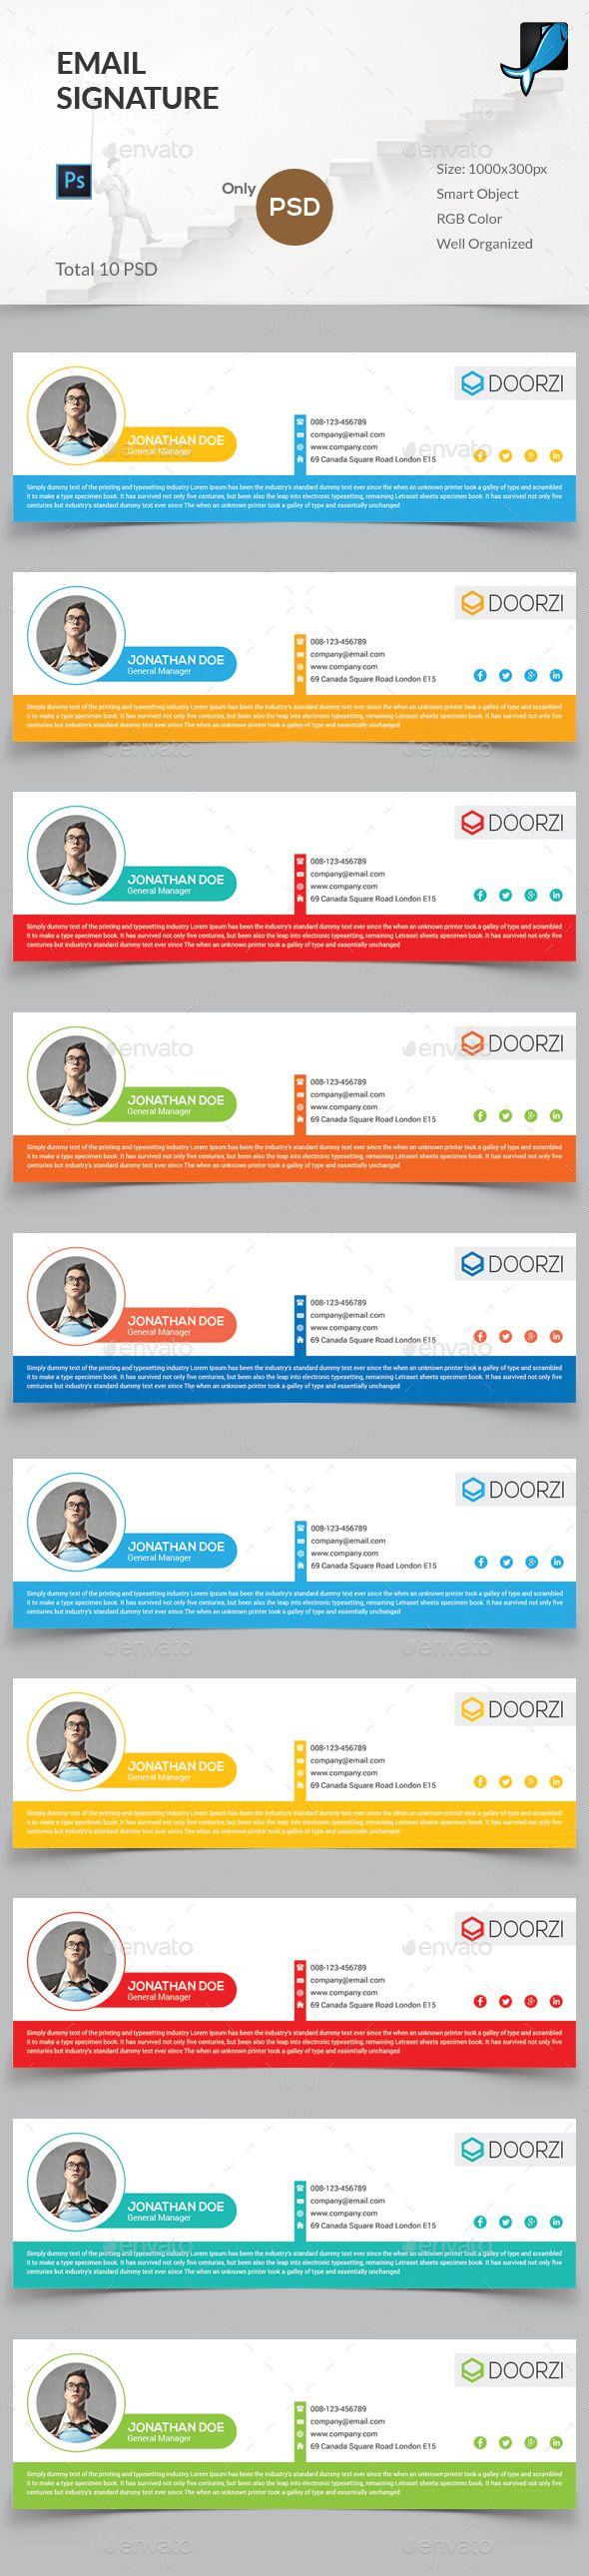 10 best email signature design case studies with tips on